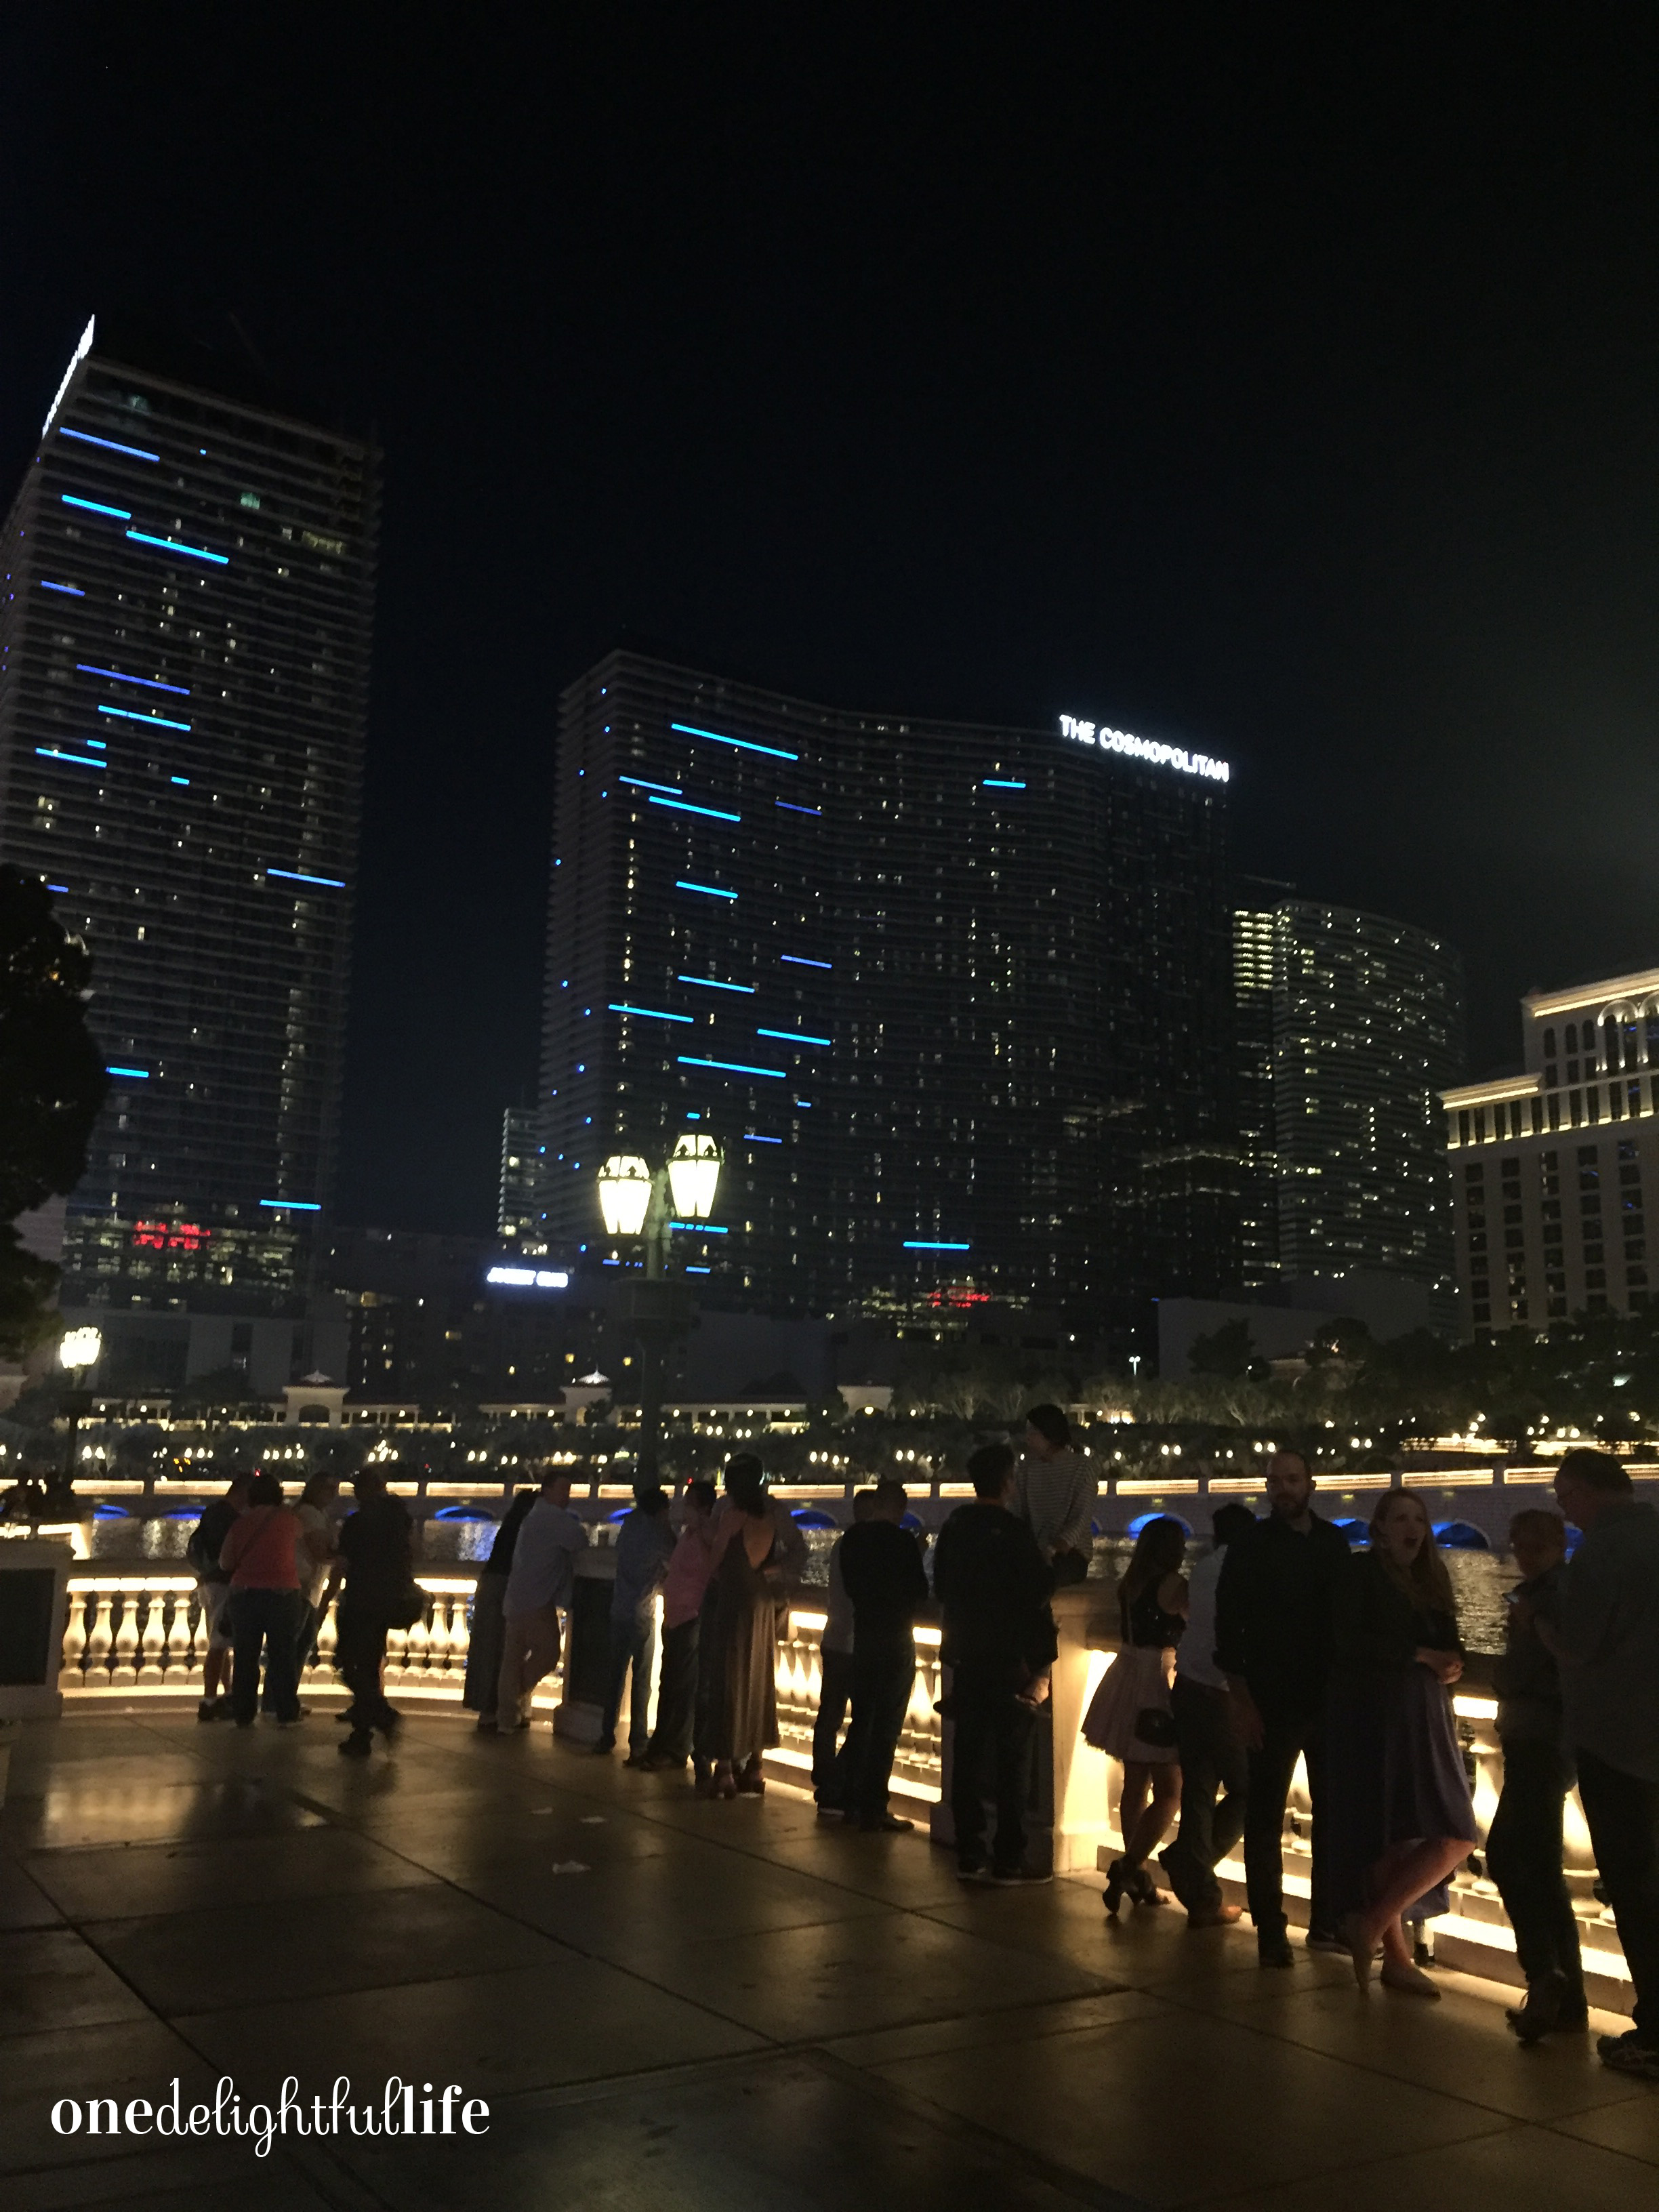 When the fountains come alive, so do the people watching them thanks to the dance-inspiring music that plays.